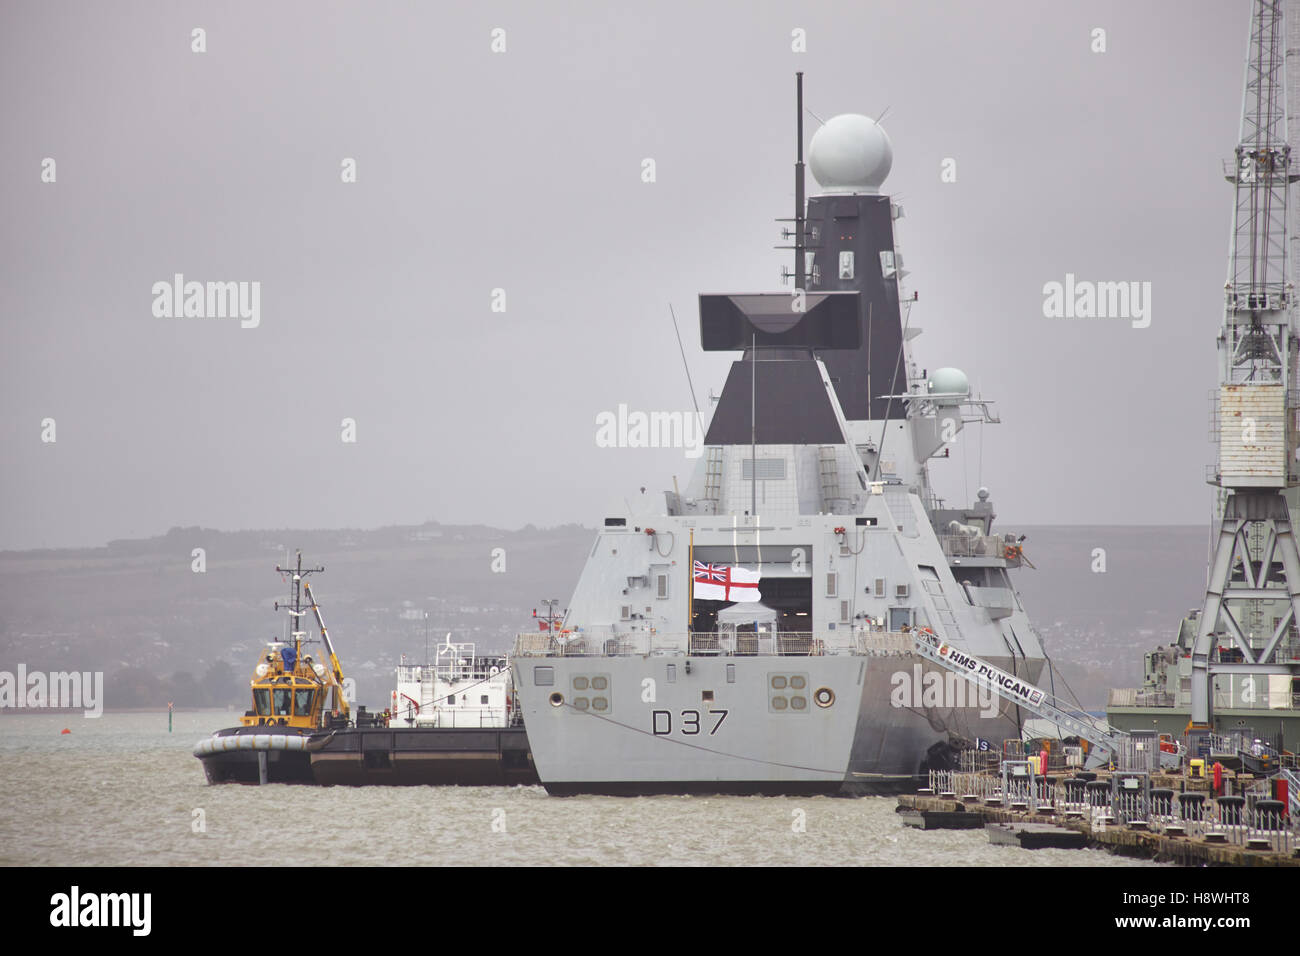 HMS Duncan (D37) at Portsmouth - Stock Image